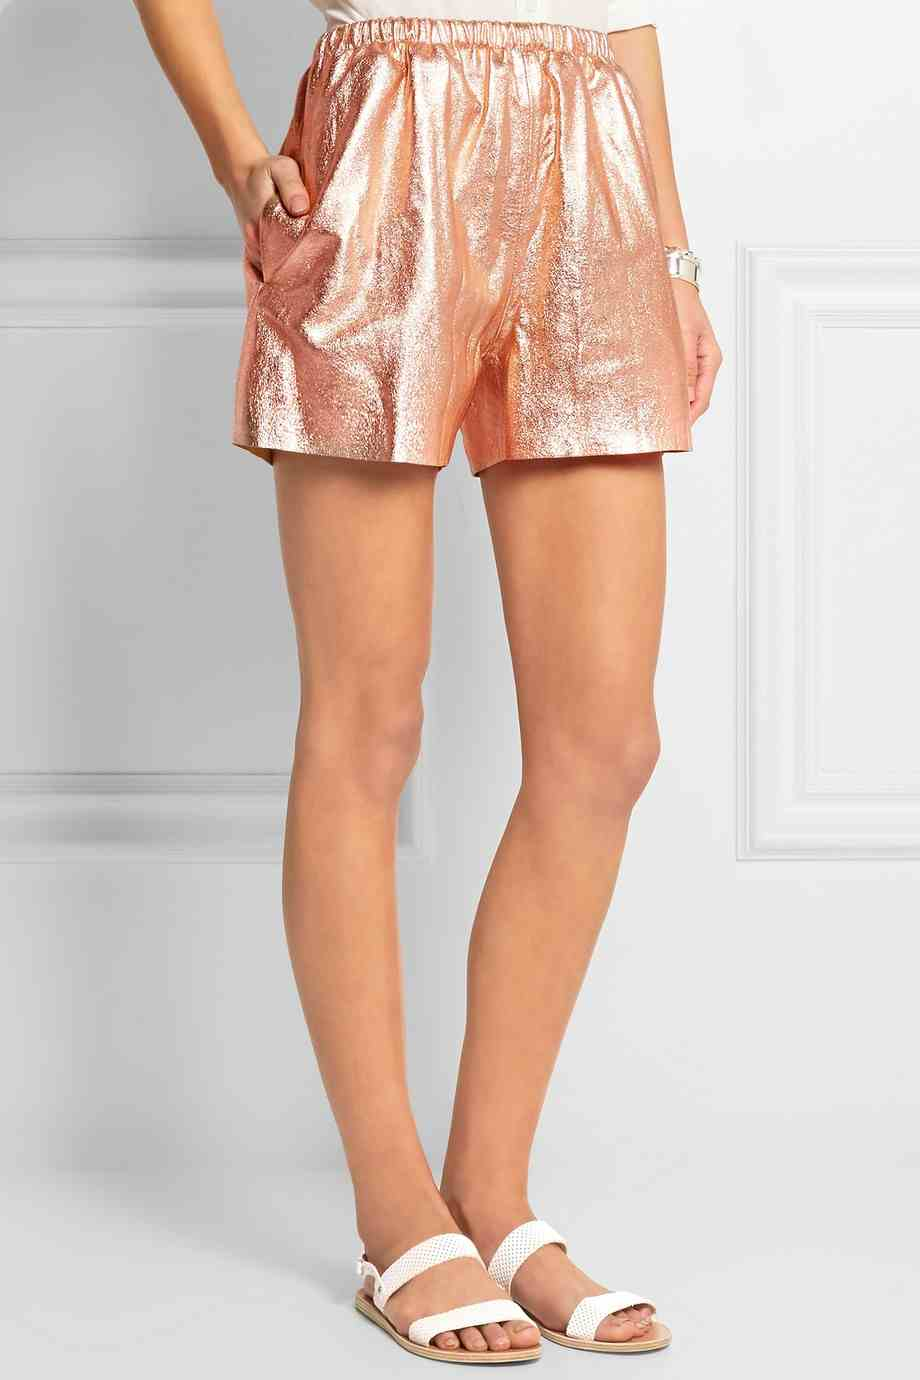 Red Valentino - short (385€ au lieu de 550€)